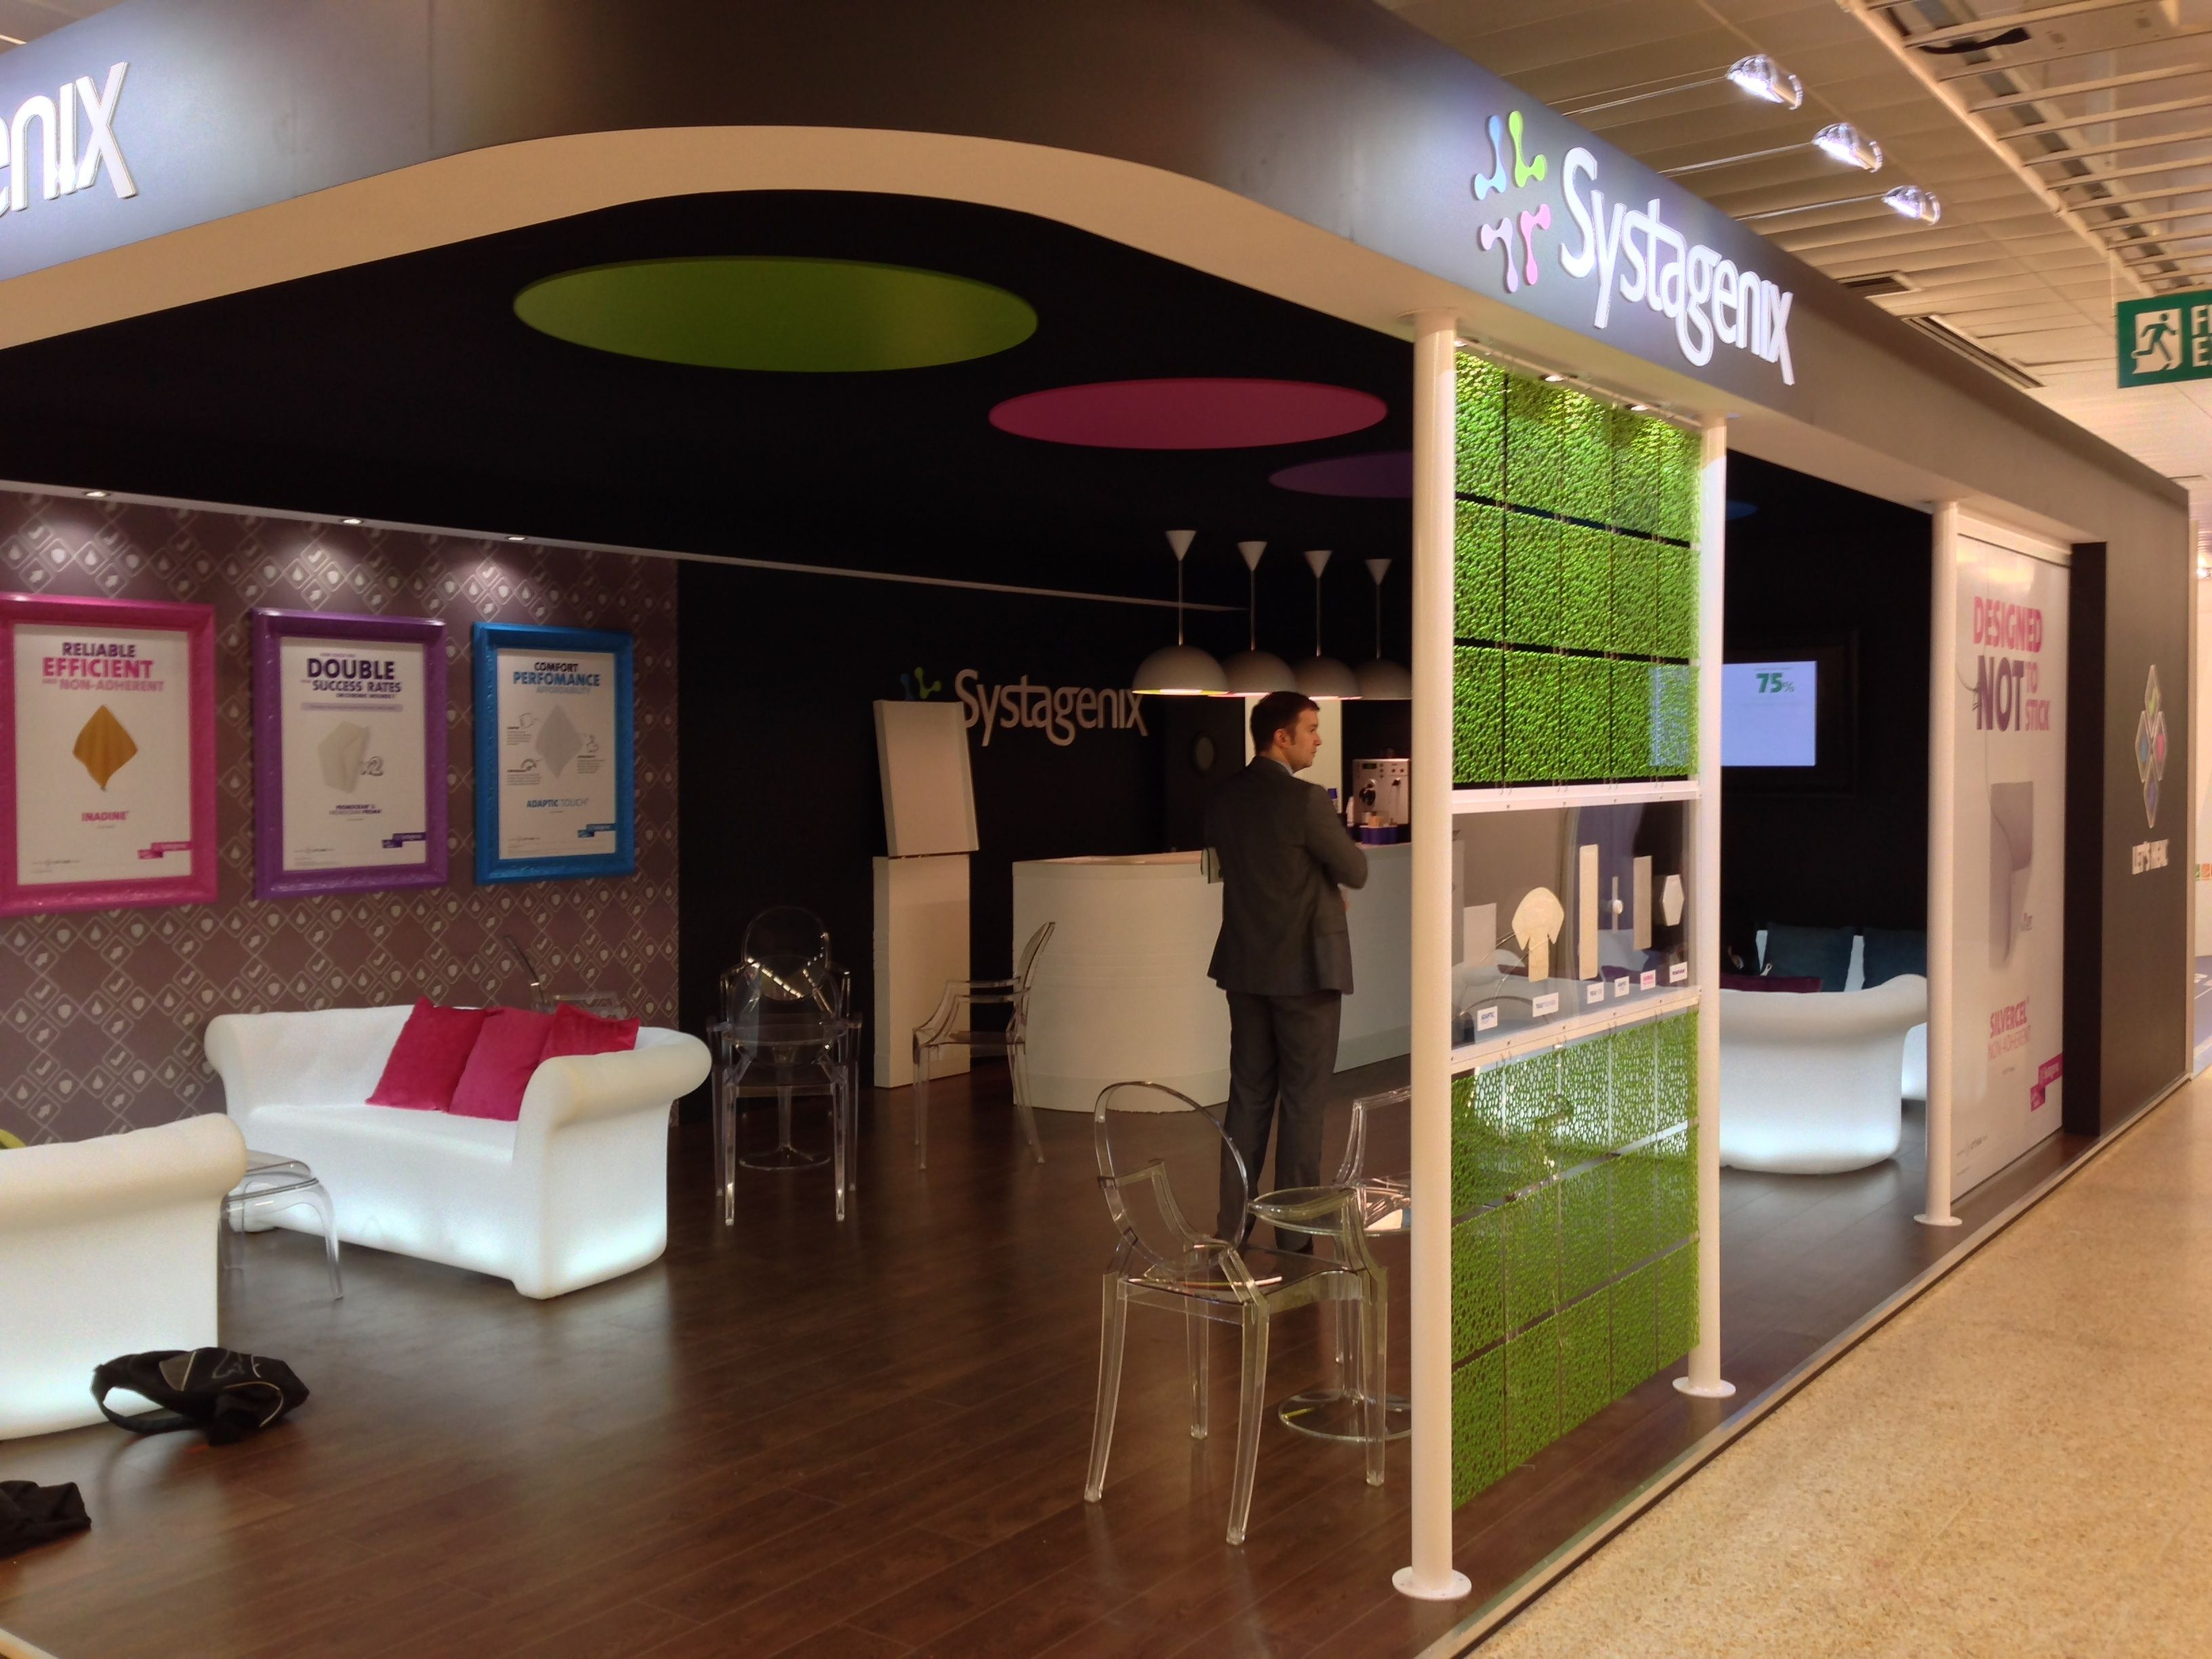 Envisage Exhibition Stand Design And Build Uk : Pin by envisage brand experiences on exhibition stands creating a